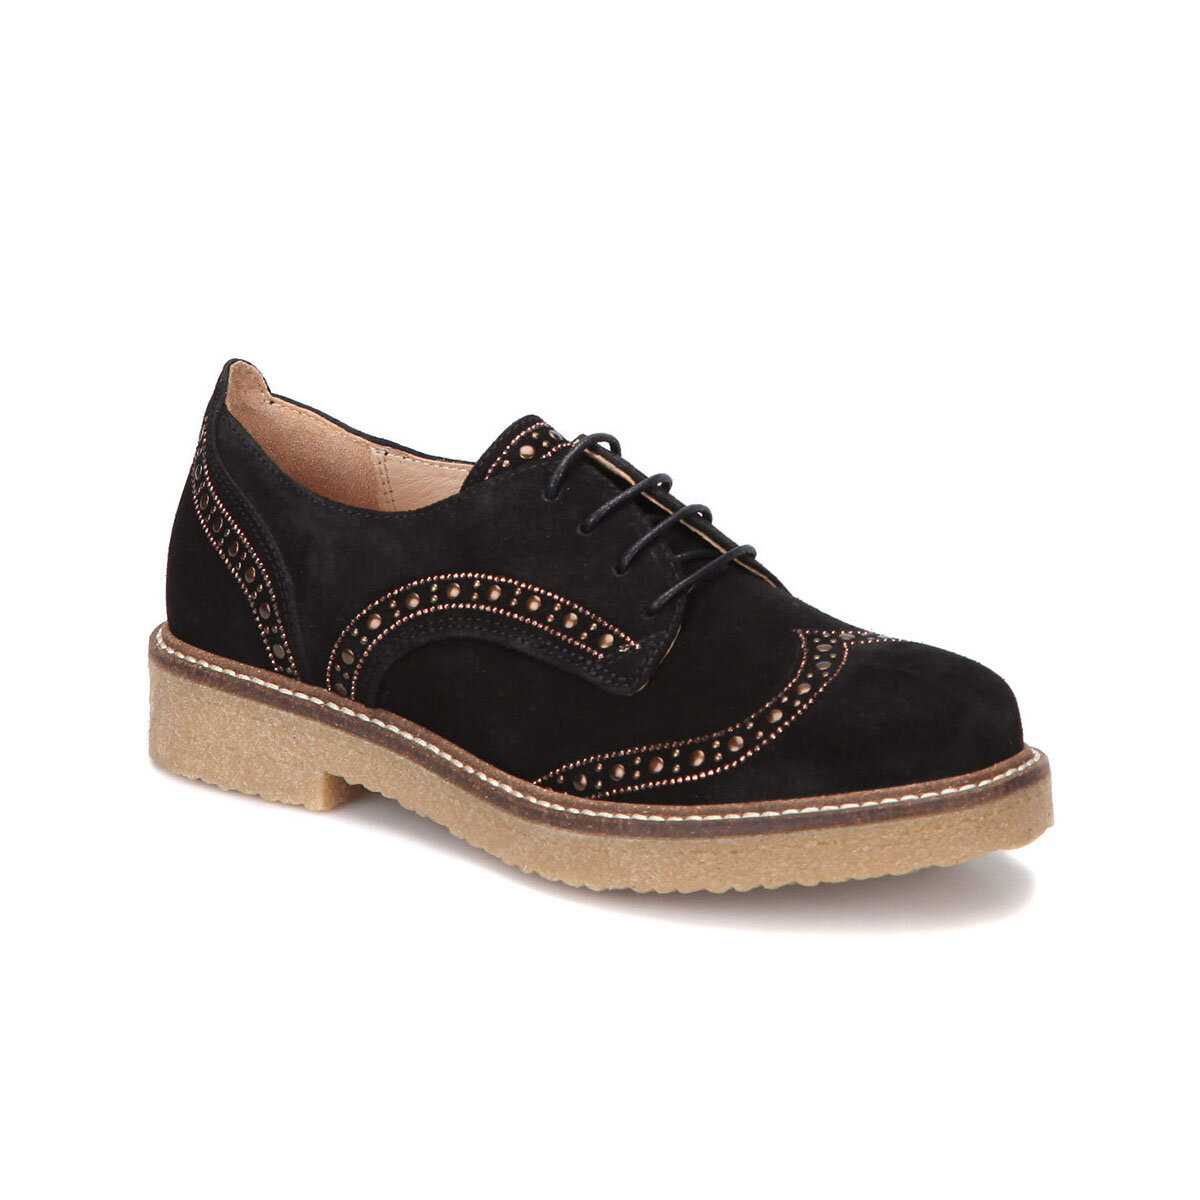 FLO 28452 Black Women Oxford Shoes BUTIGO